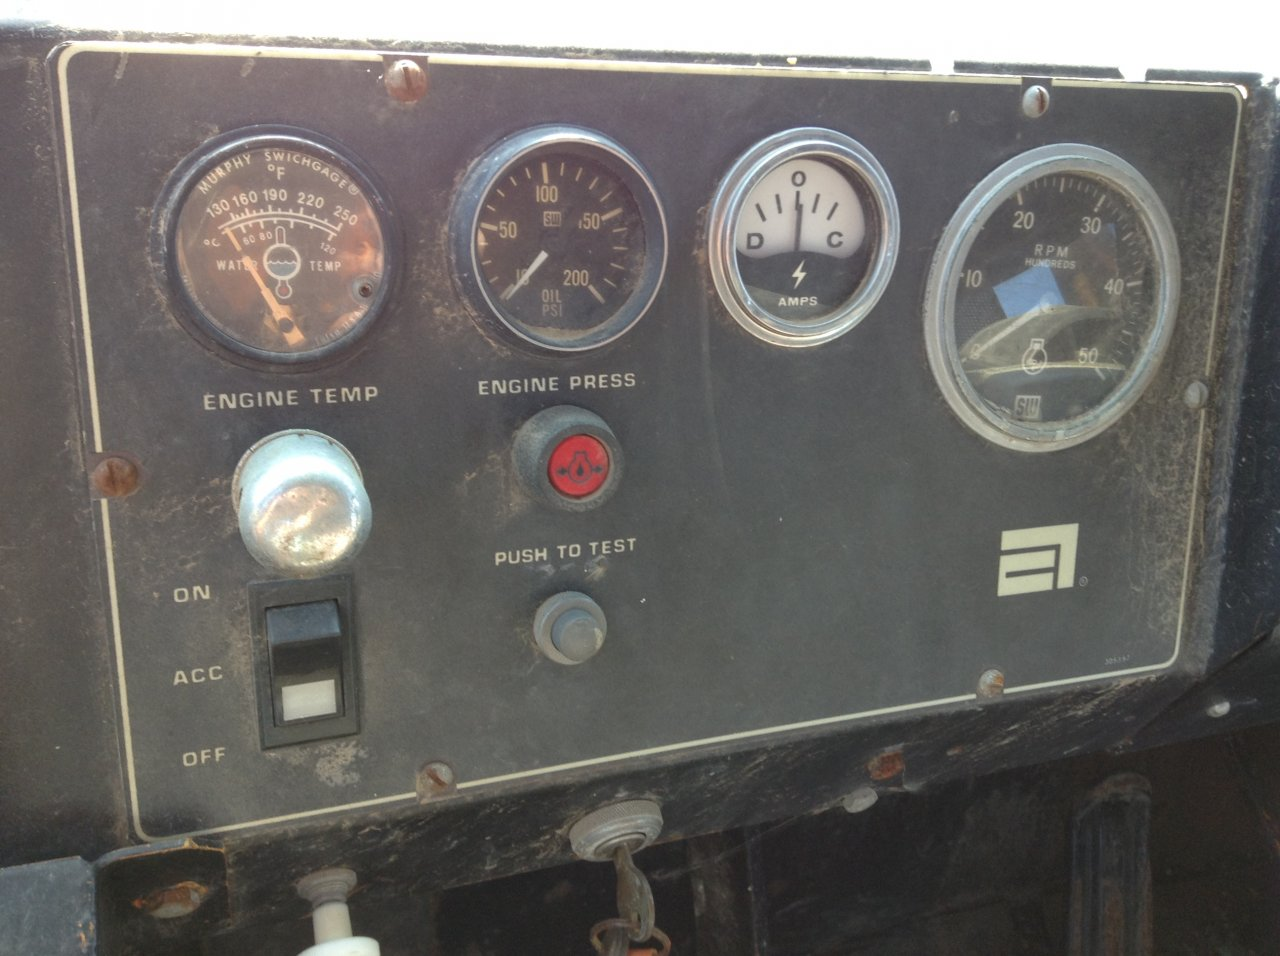 AG-CHEM 1253 Instrument Cluster